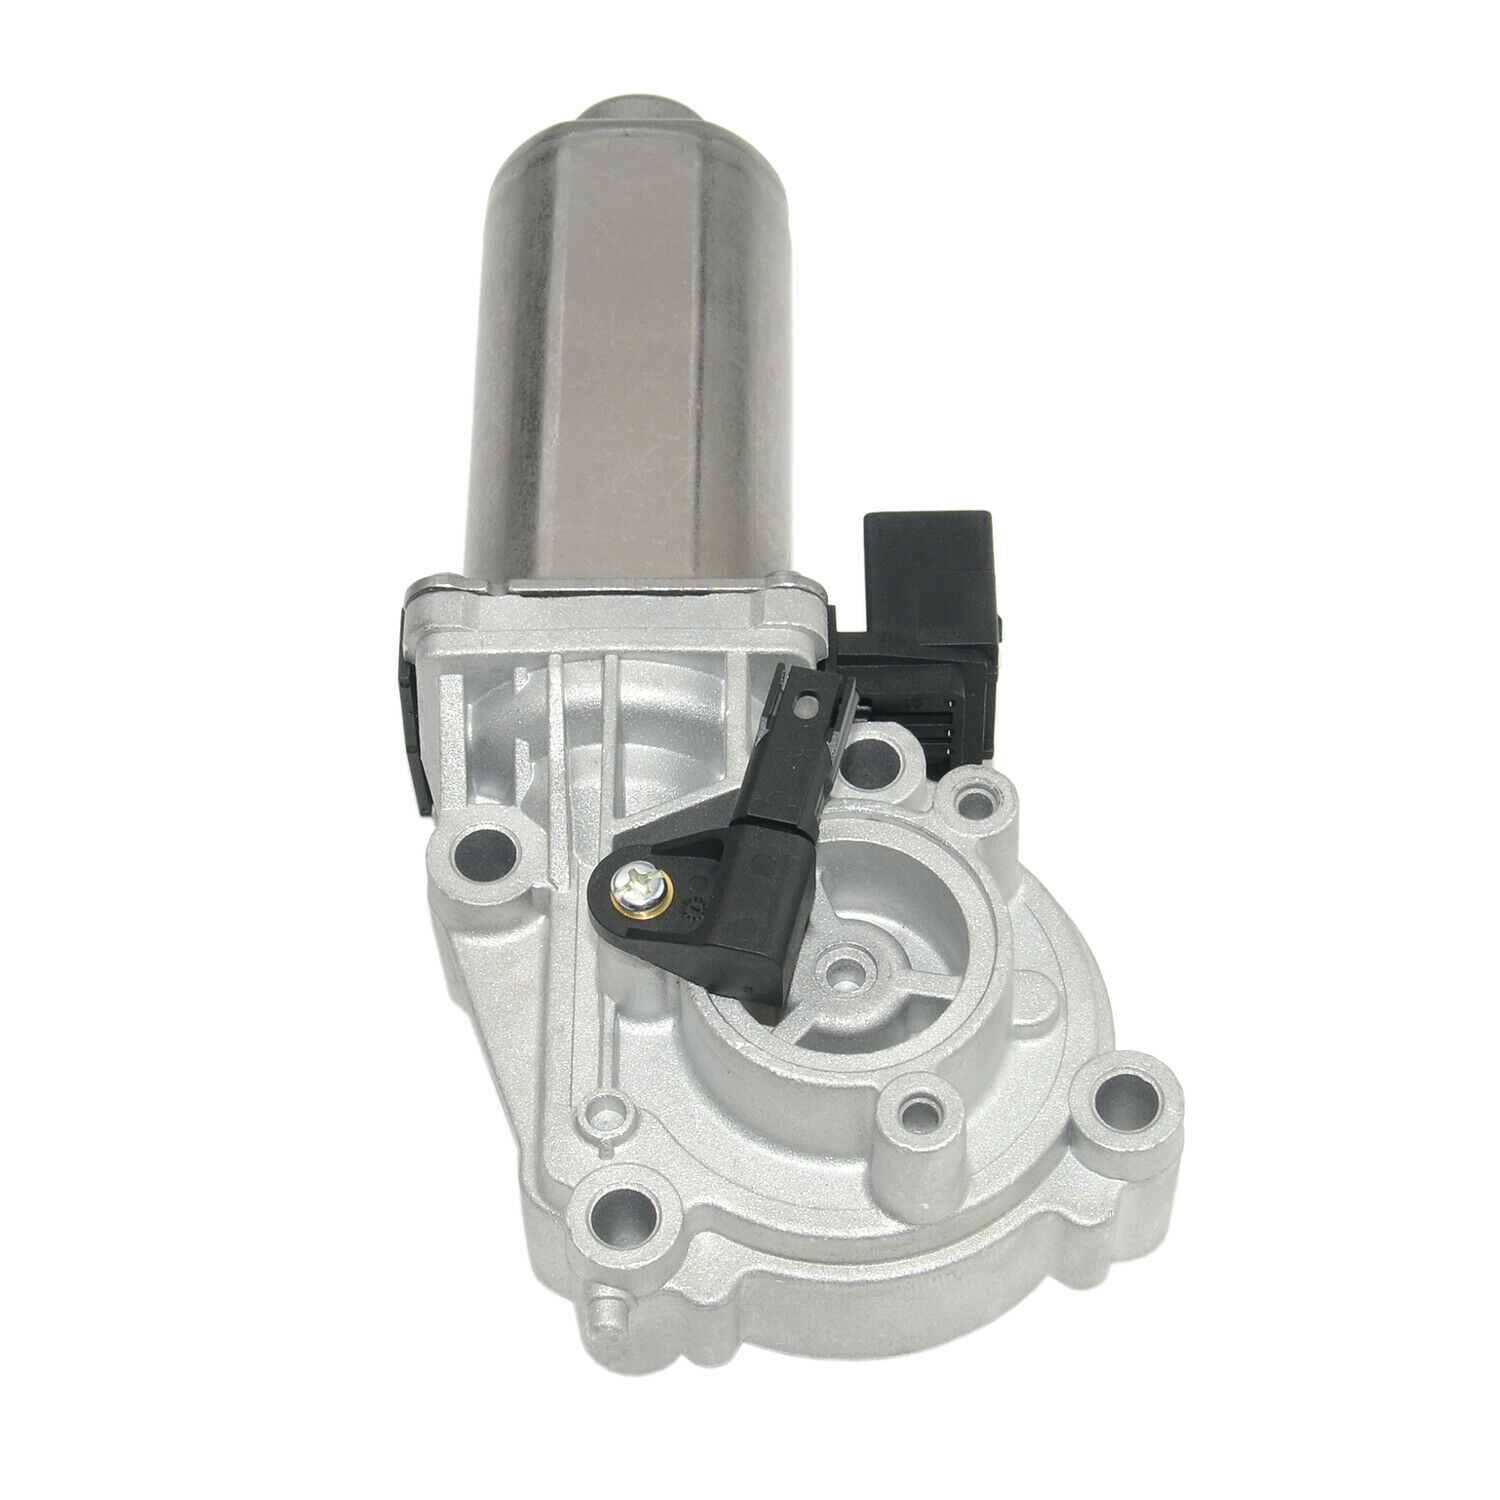 AP03 New Transfer Case Shift Motor Actuator with Resistor (Sensor) For BMW X3 E83 X5 E53 E70 F15 F85 F25 ATC400/ATC500/ ATC700